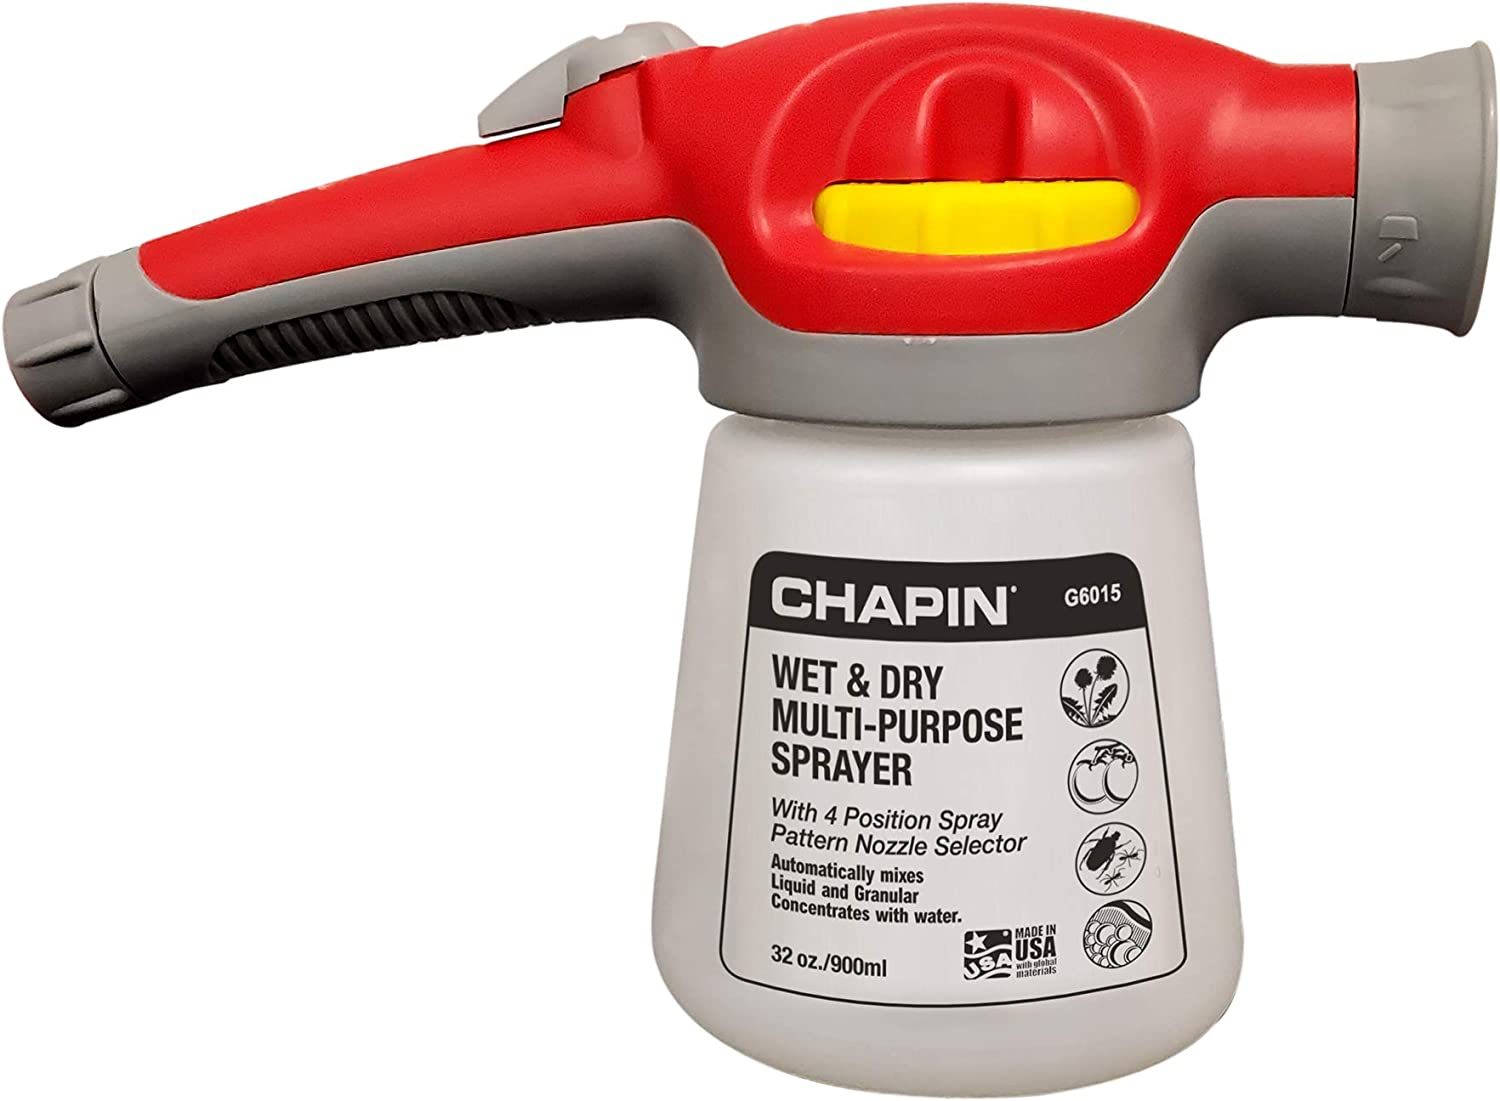 Chapin International G6015 Wet/Dry Hose-End Sprayer, Translucent